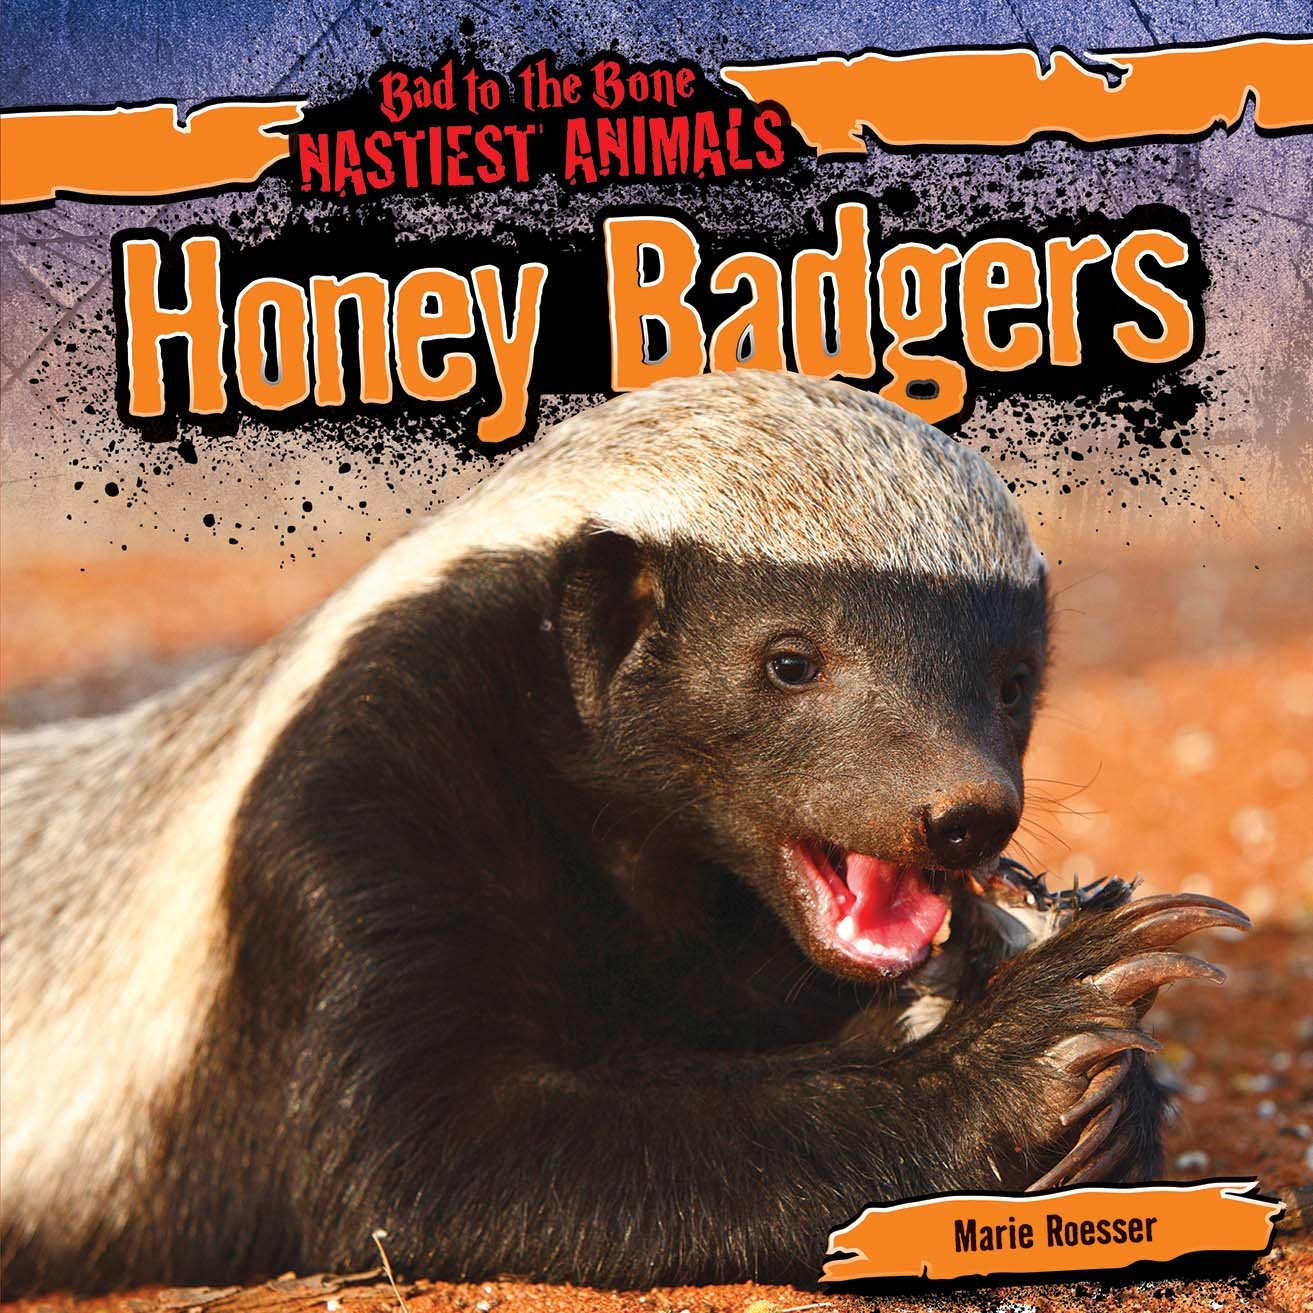 Honey Badgers (Bad to the Bone: Nastiest Animals)